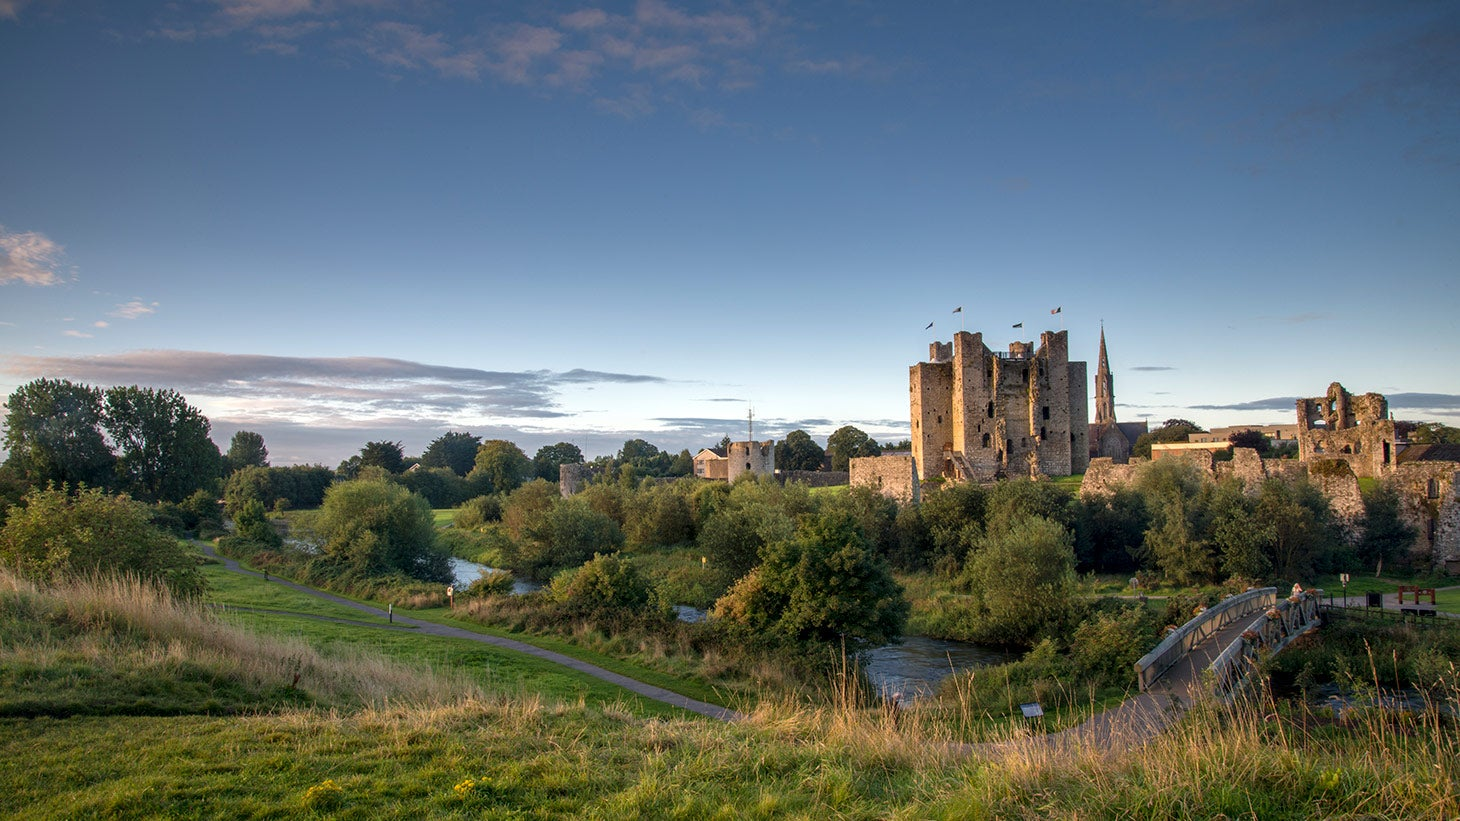 Visit Irelands largest Anglo-Norman castle in Trim.